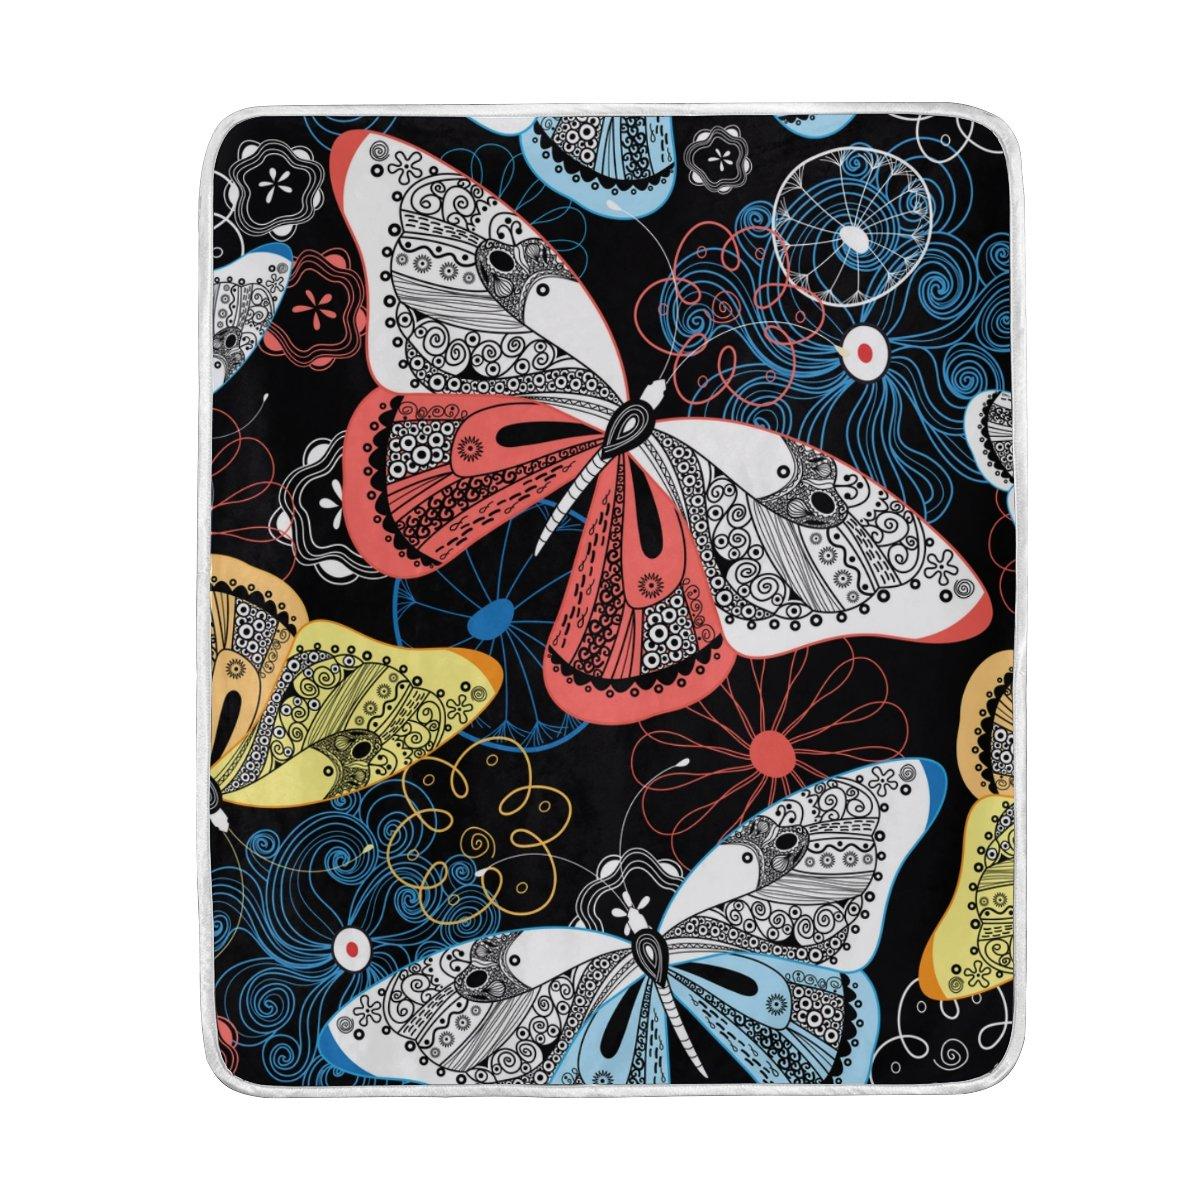 My Little Nest Warm Throw Blanket Fancy Butterflies Lightweight Microfiber Soft Blanket Everyday Use for Bed Couch Sofa 50'' x 60''